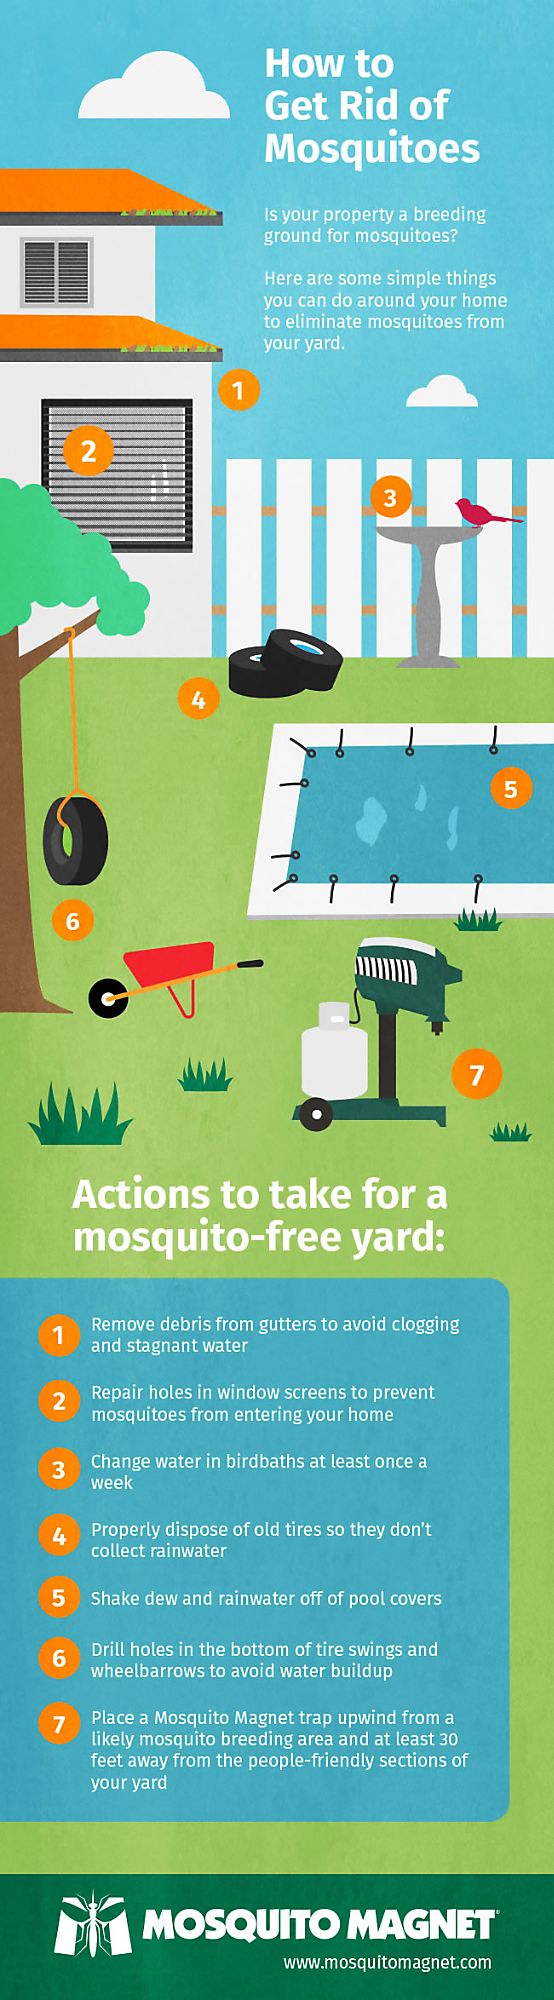 how to get rid of mosquitoes mosquito magnet